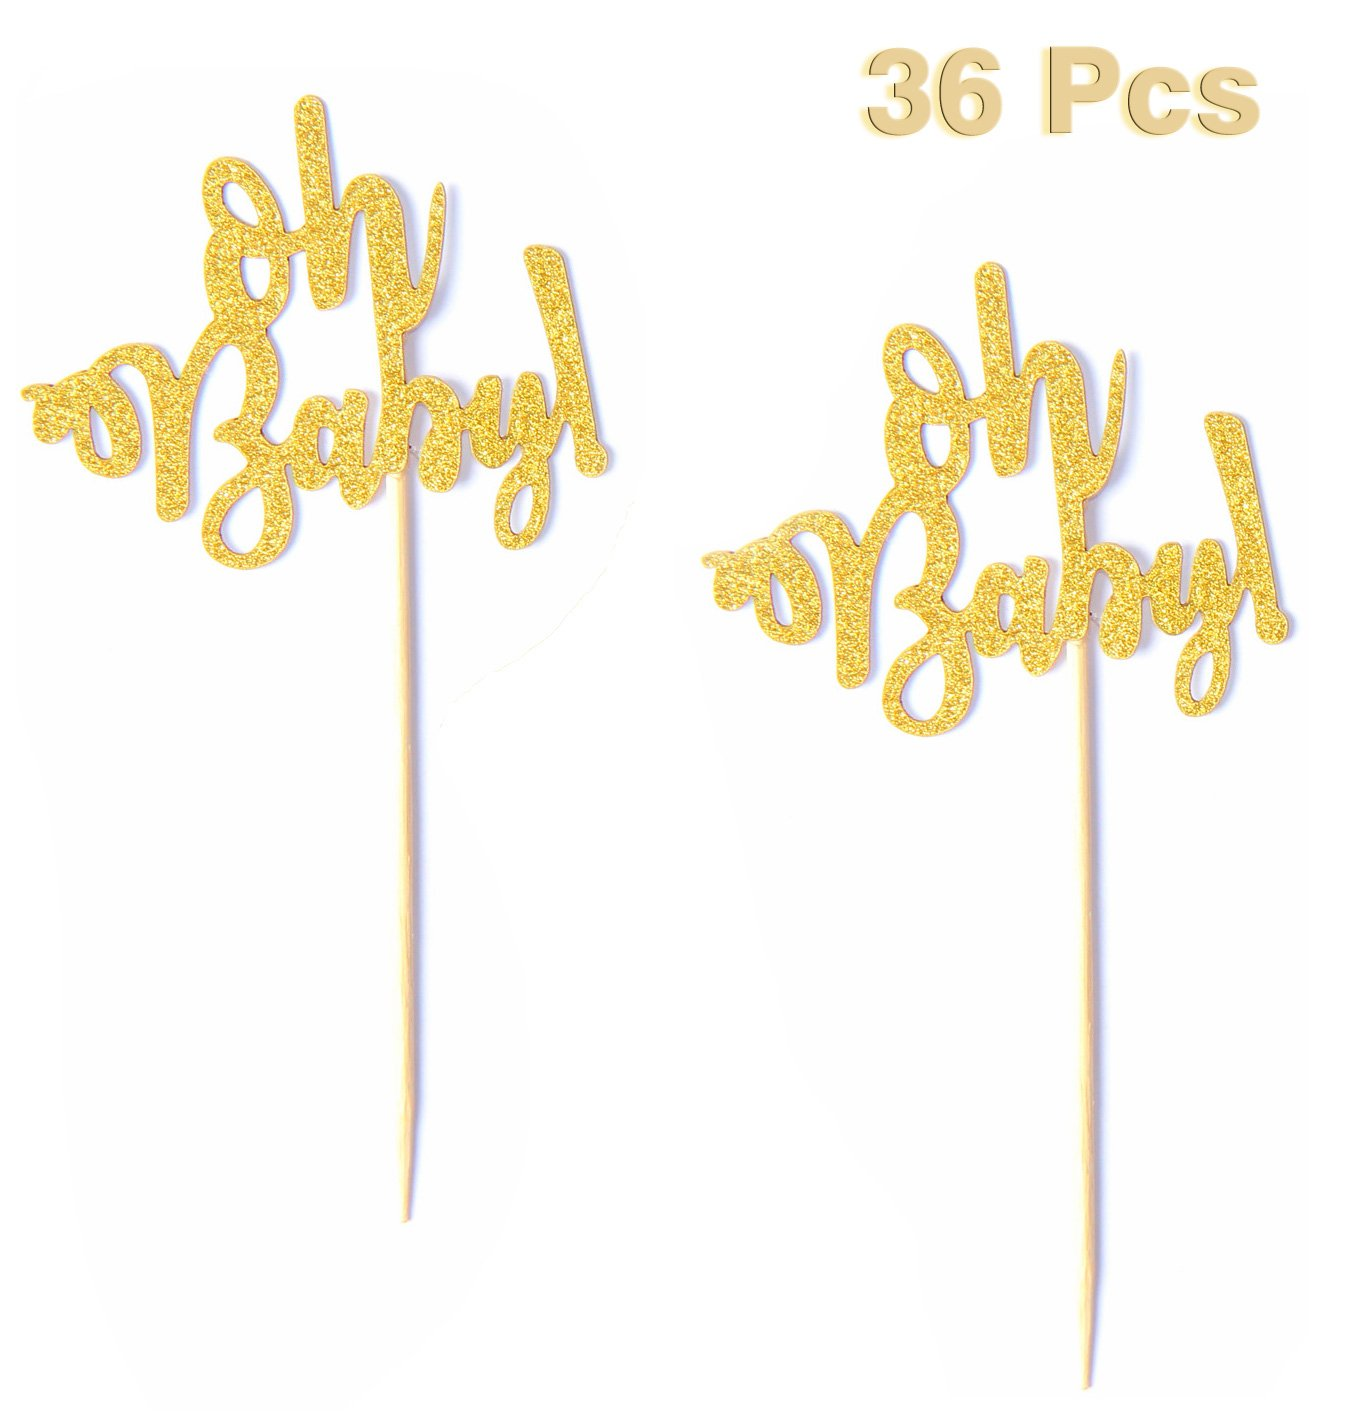 Set of 36 Golden Oh Baby Cupcake Toppers Baby Shower Party Decors Decorations Baby's Birthday Supplies